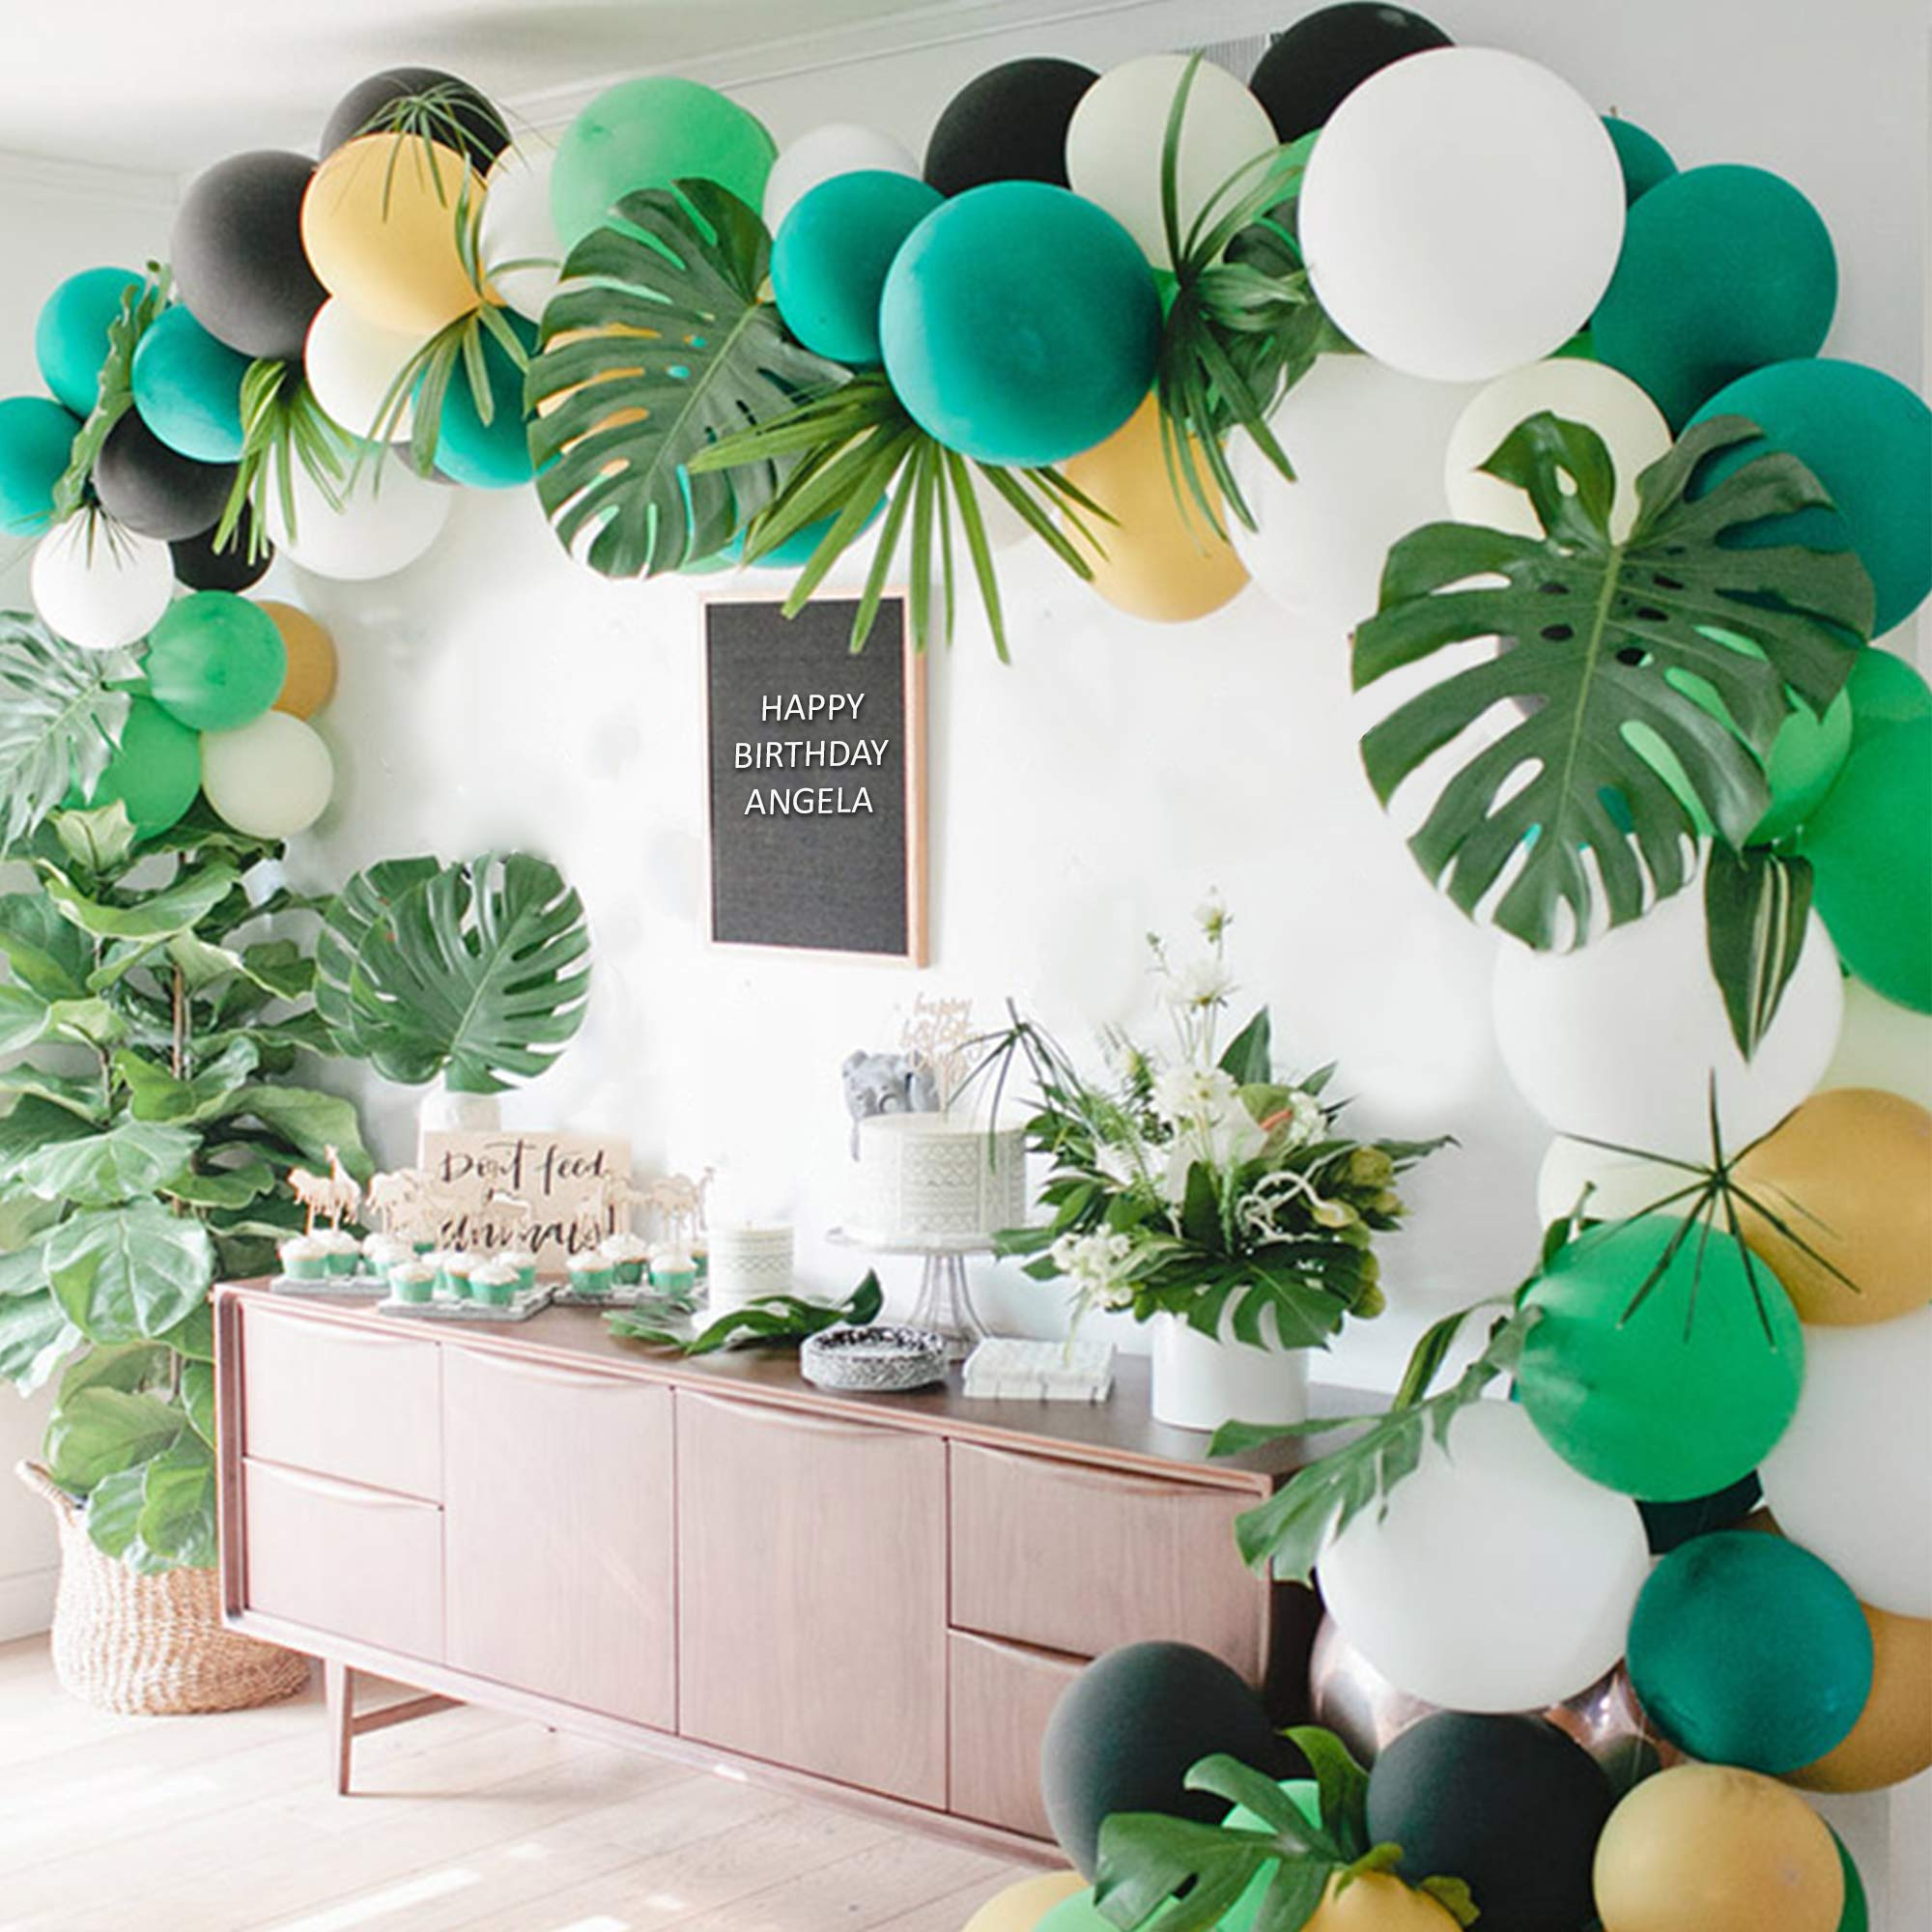 Safari Party Supply Decoration Kit | 130pcs Balloons, 24pcs Palm Leaves, 1 Arch Balloon Strip Tape, 1 Roll of Stickers, 1 Green Ribbon, 5pcs Mini Animal Balloons - Jungle Kids Birthday Decor